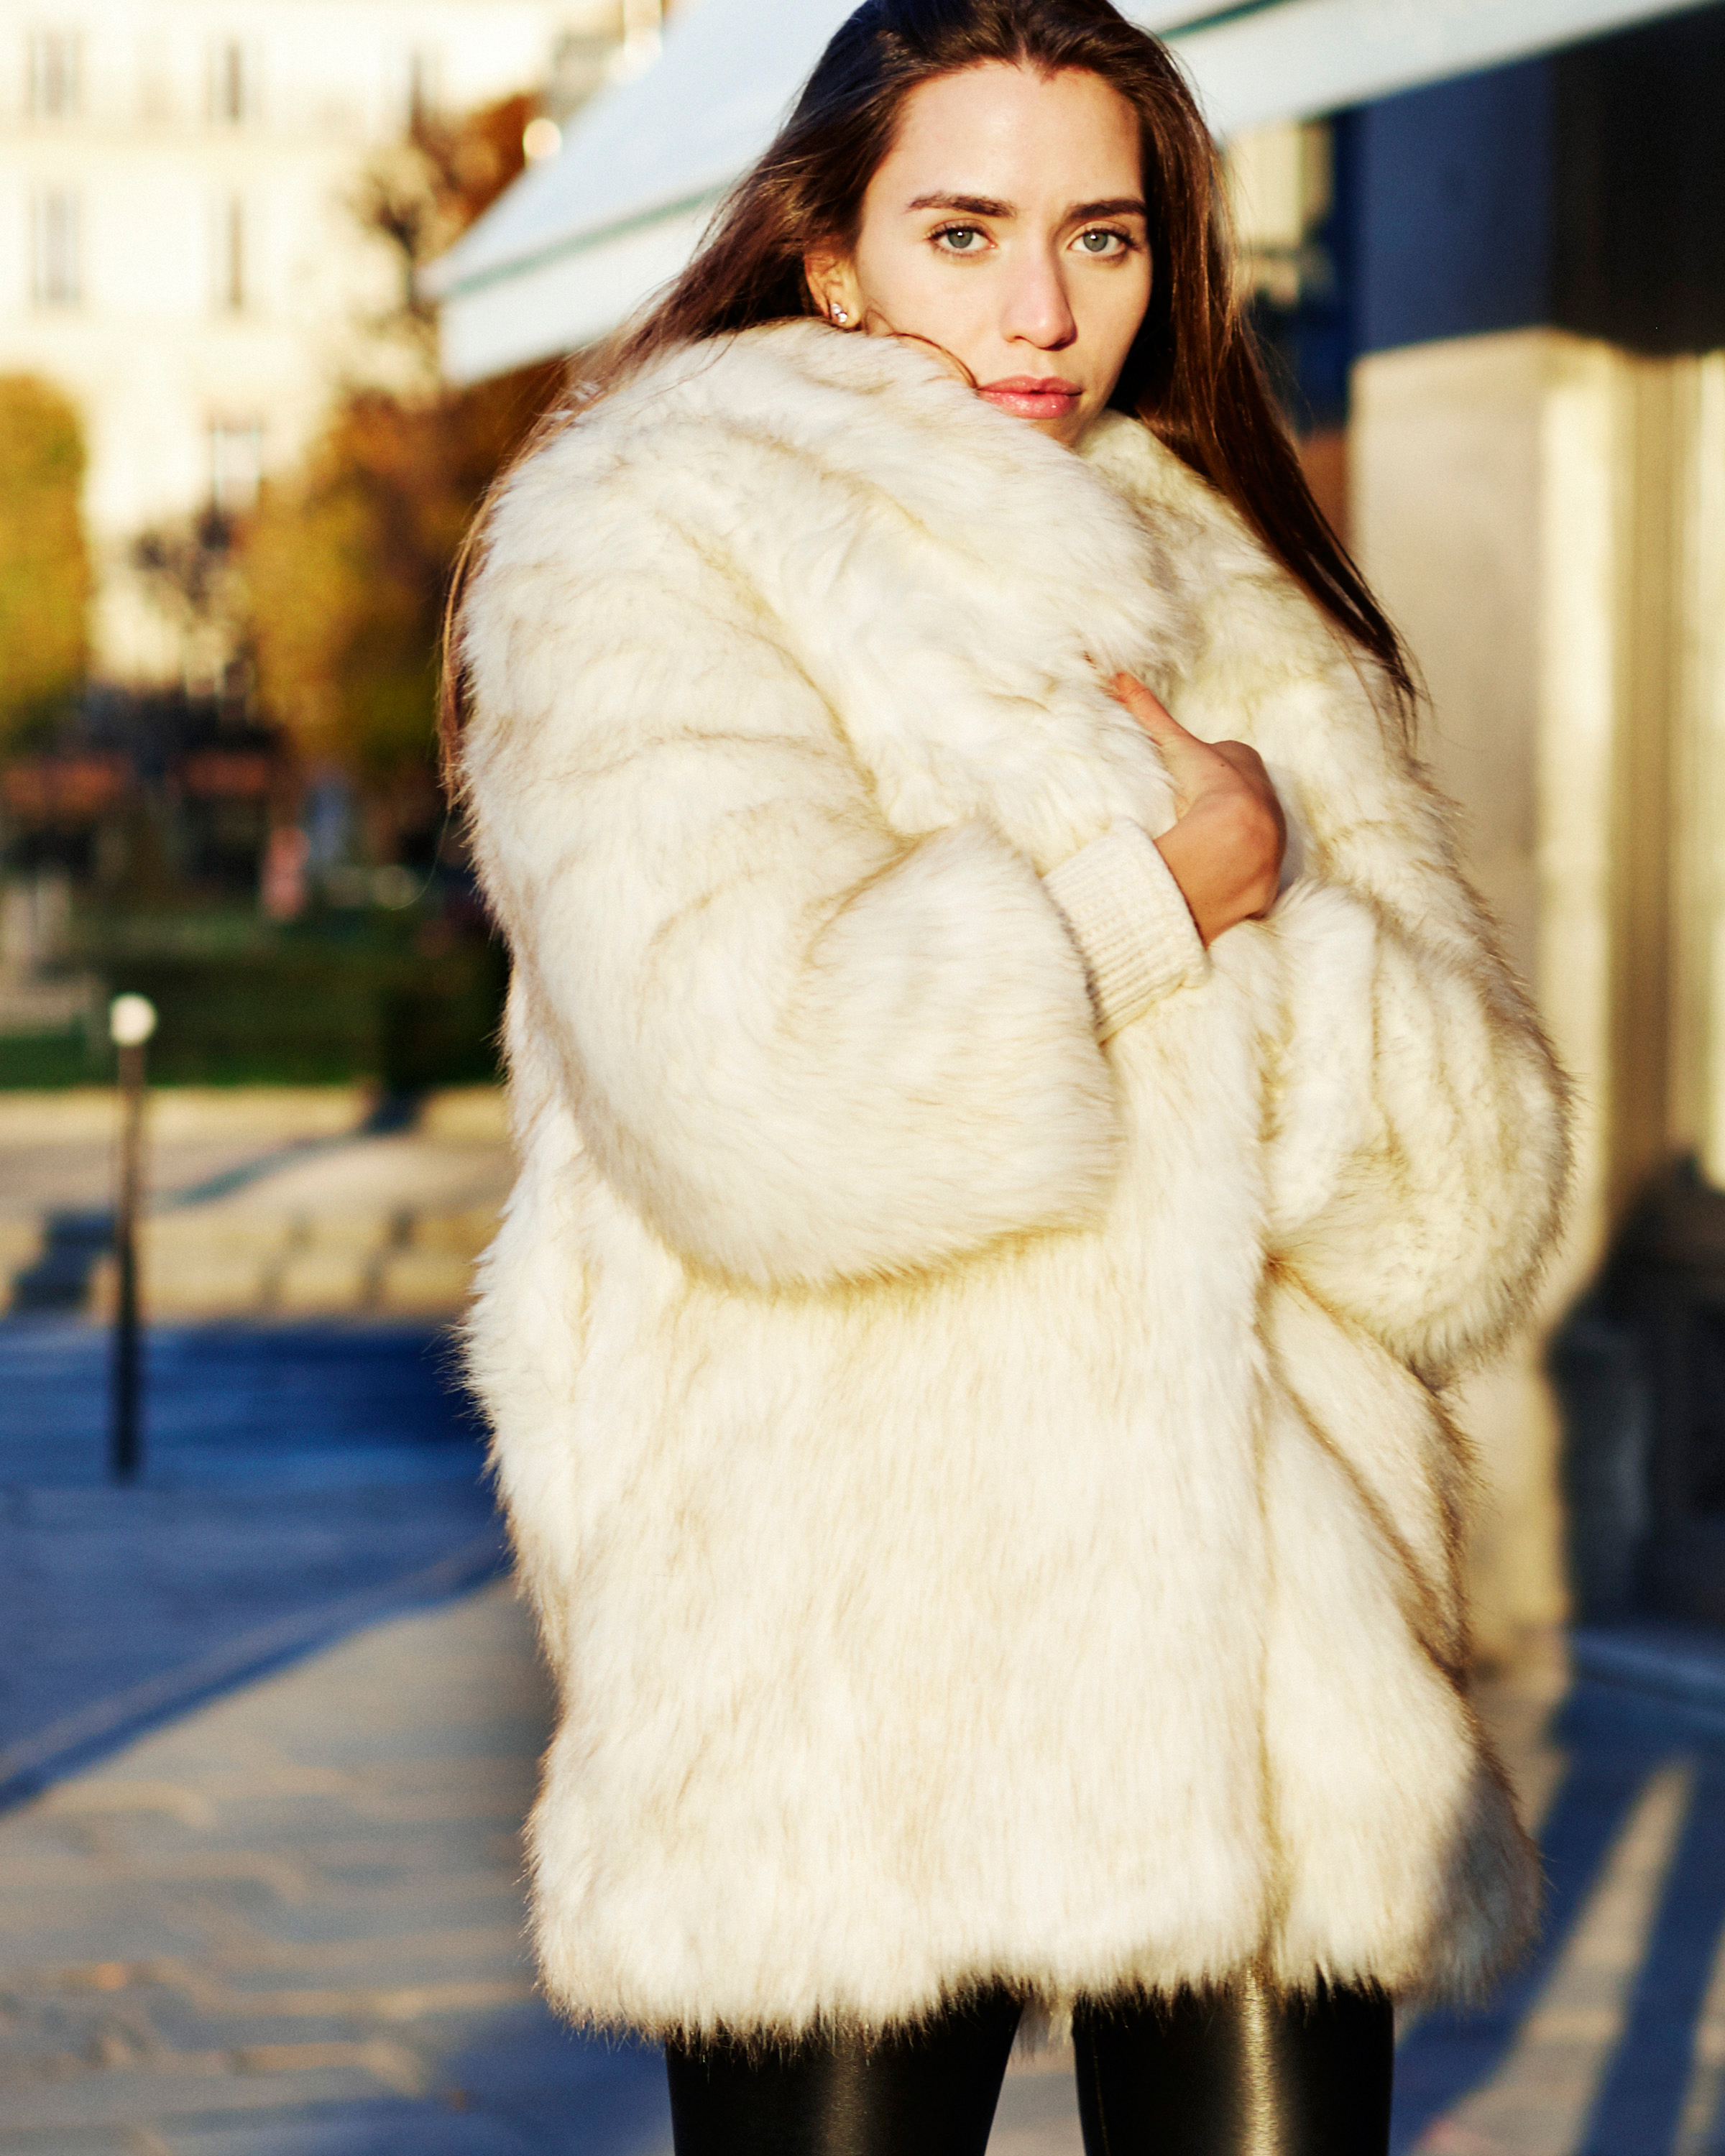 Faux fur coat by Minika Ko. Photographed by Tom Concordia